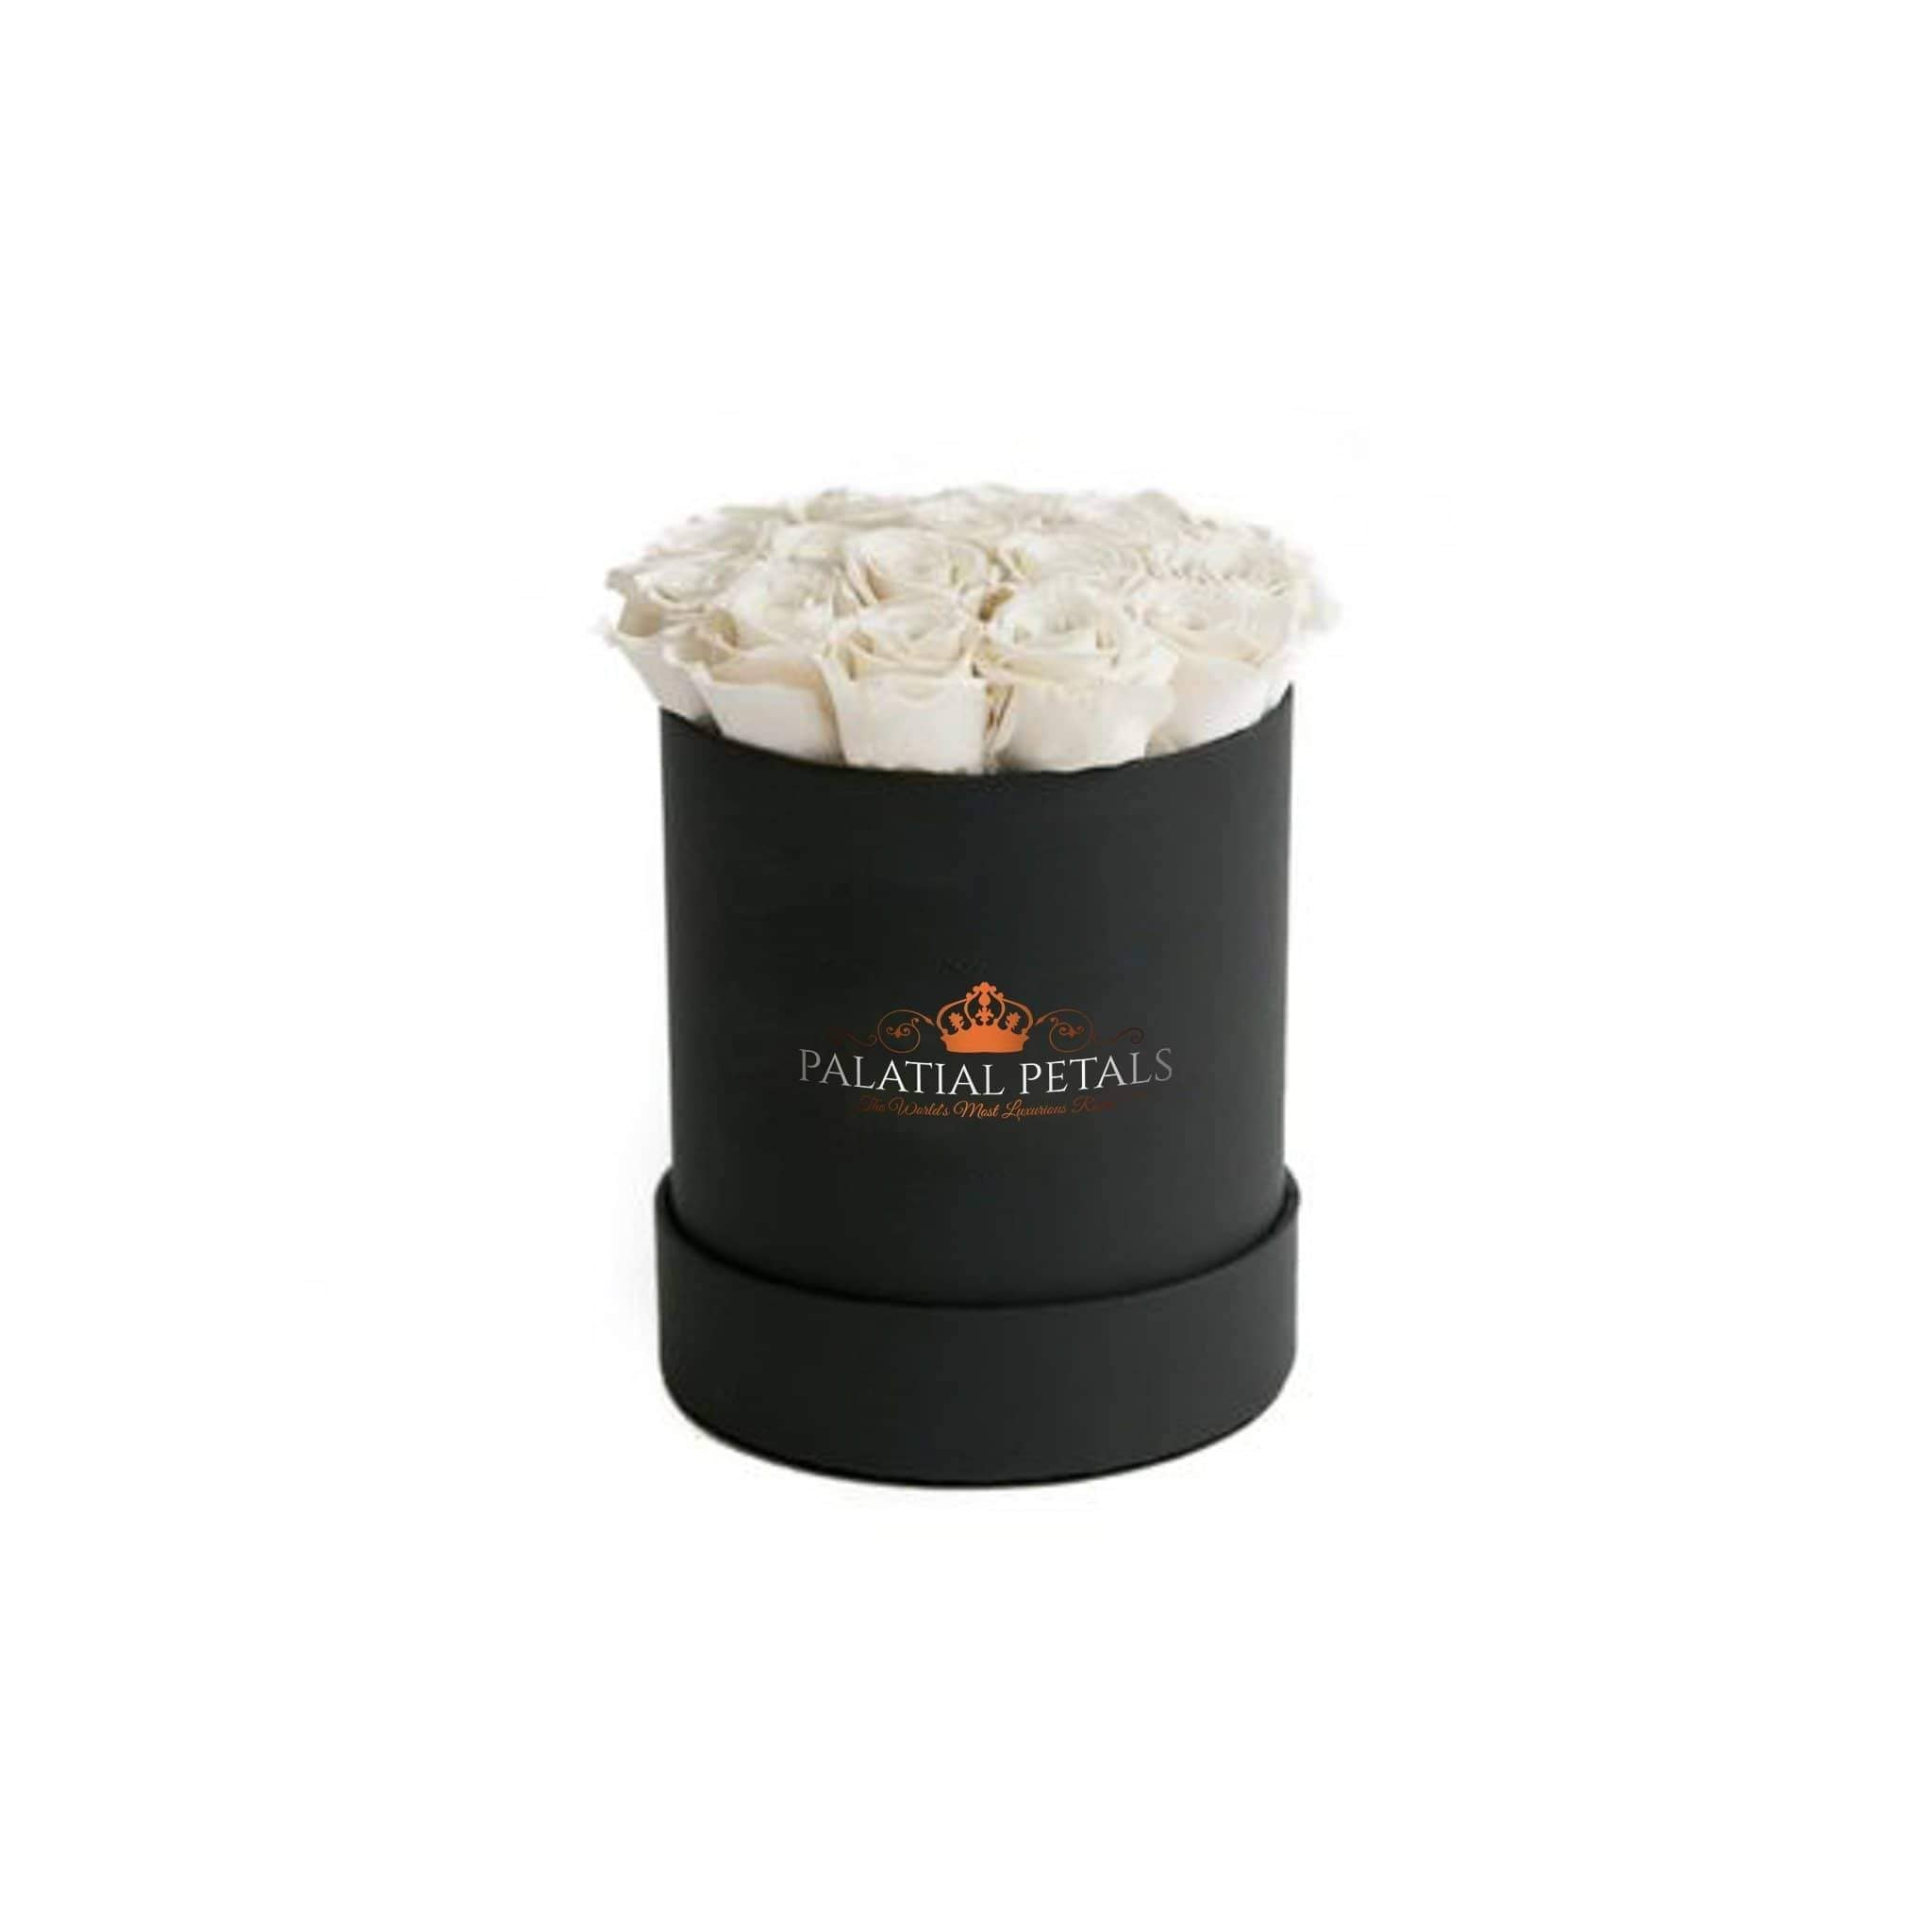 White Roses That Last A Year - Petite Rose Box - Palatial Petals